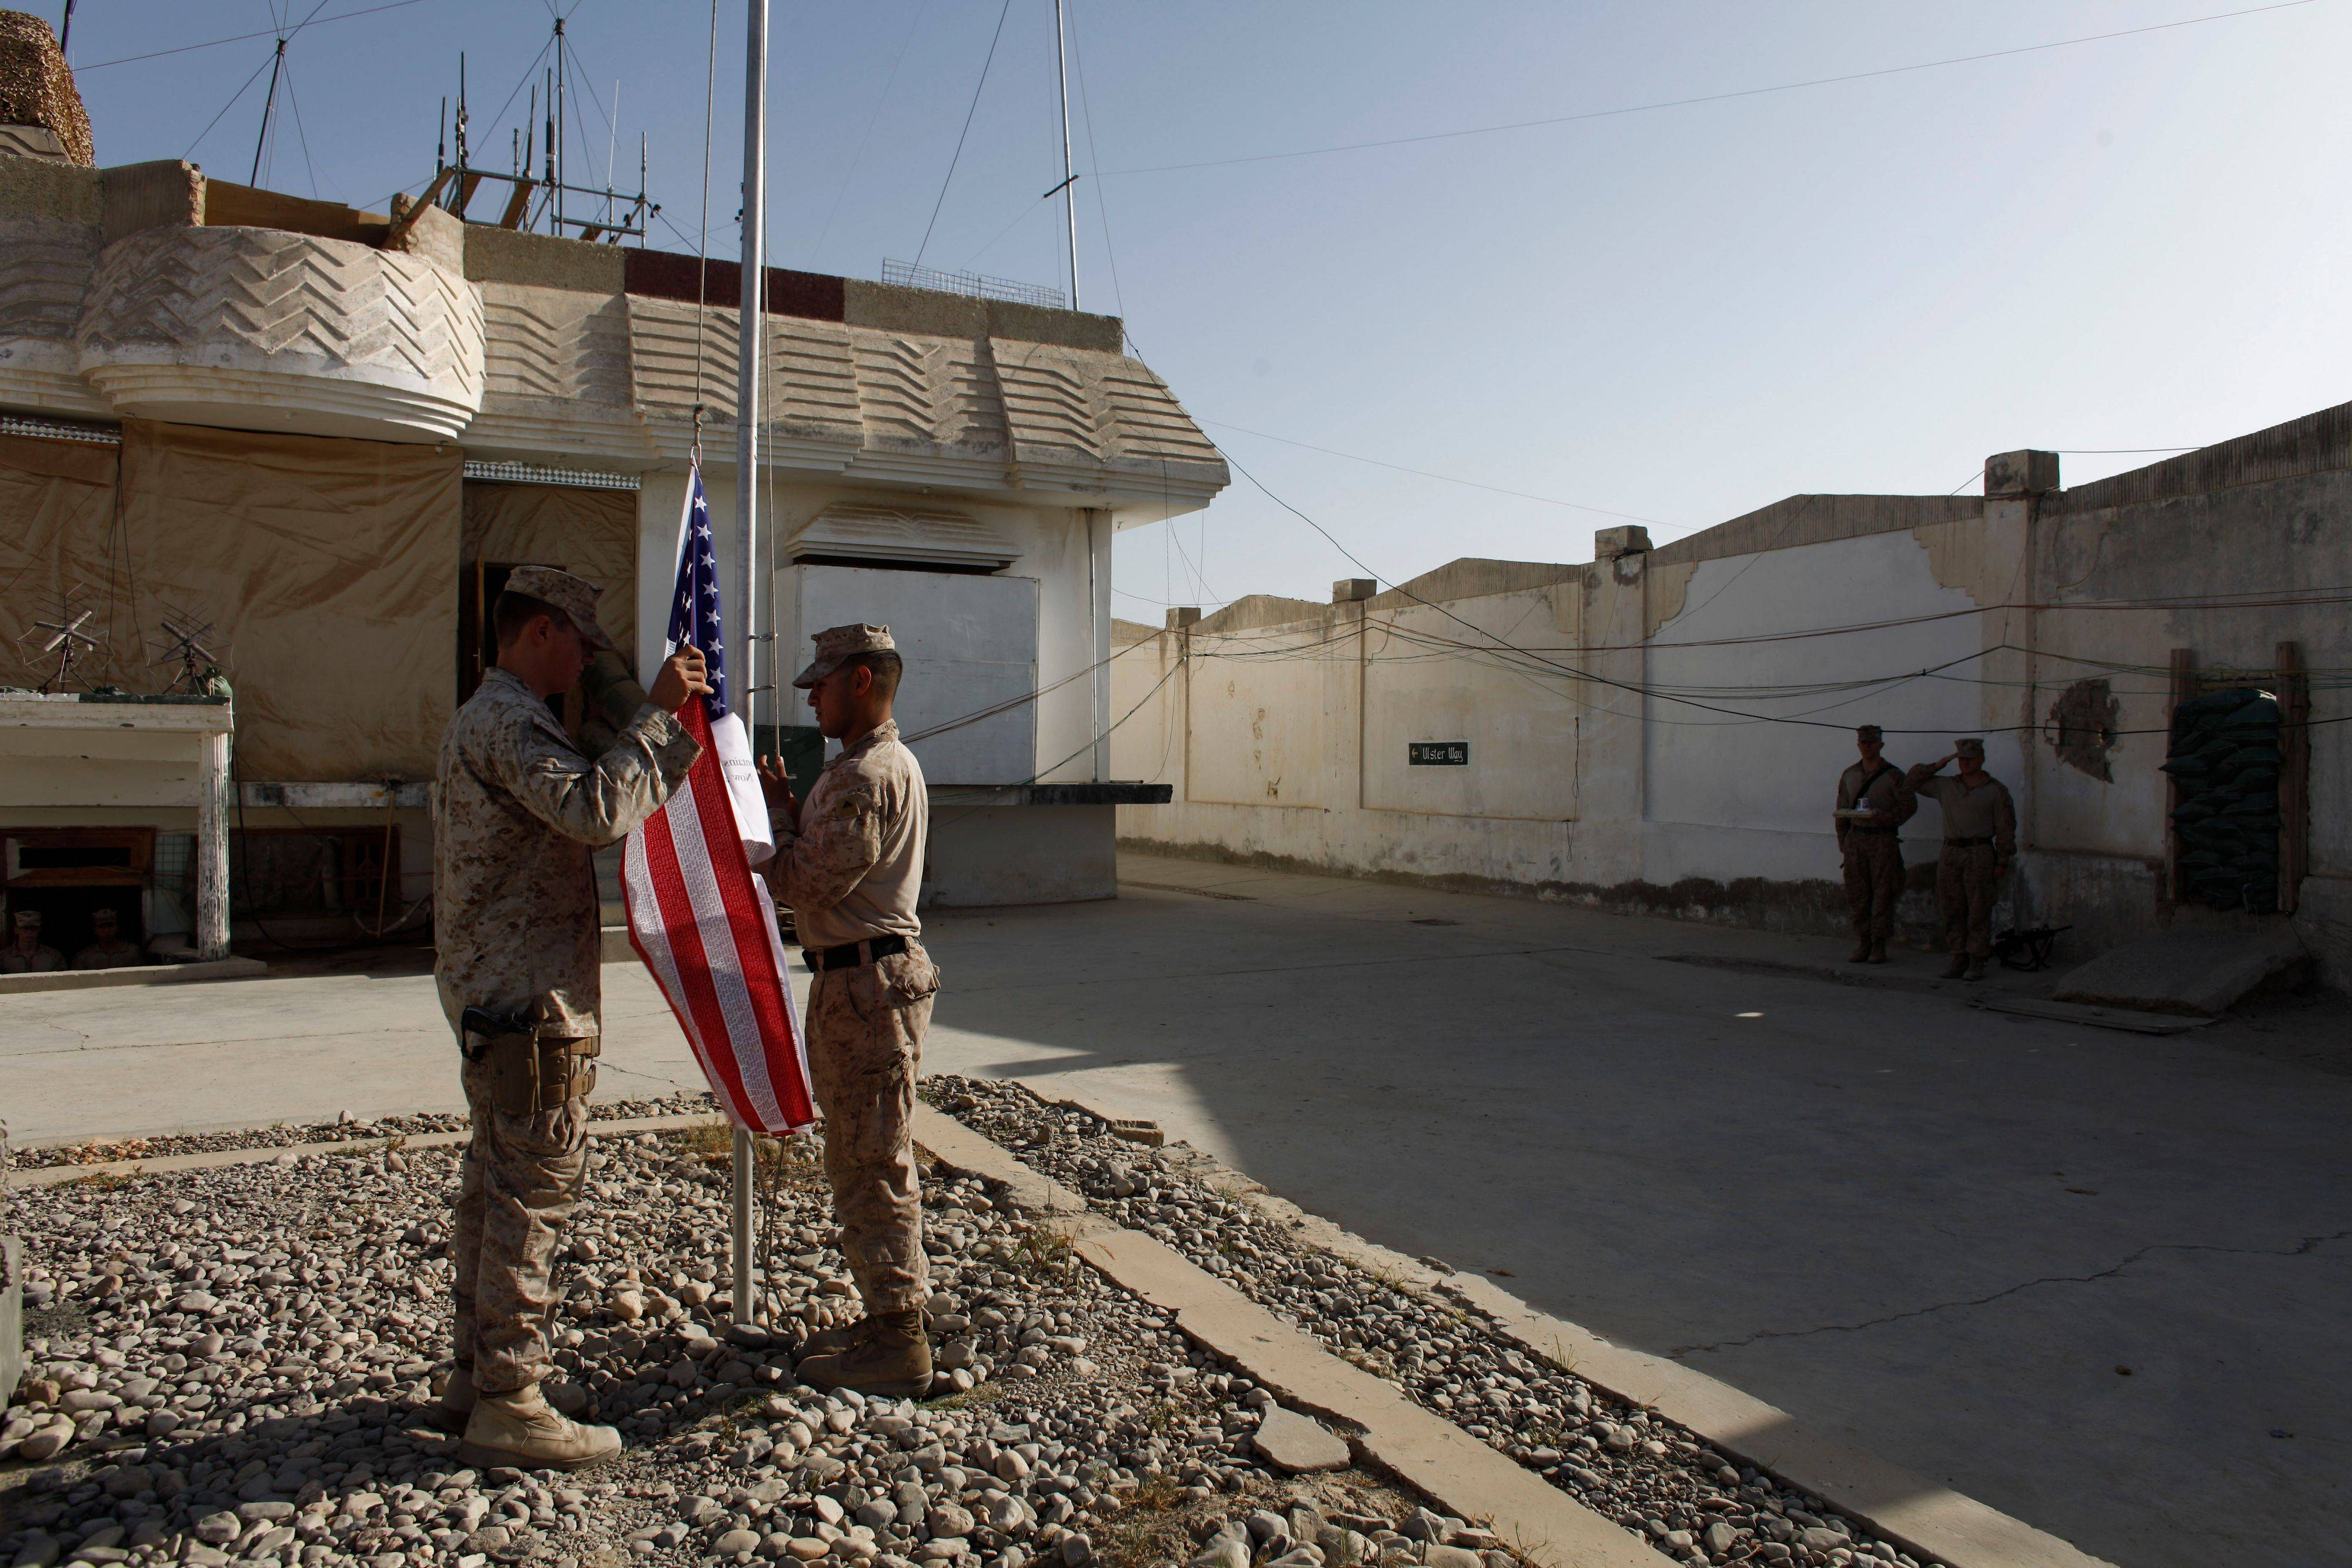 U.S. Marines raise a memorial American flag imprinted with the names of the Sept. 11, 2001 attack victims, at Forward Operating Base Jackson, in Sangin, Helmand province, Sunday Sept. 11, 2011. Ten years have passed since the deadly suicide attacks of Sept. 11, 2001 led the United States to wage war in Afghanistan.